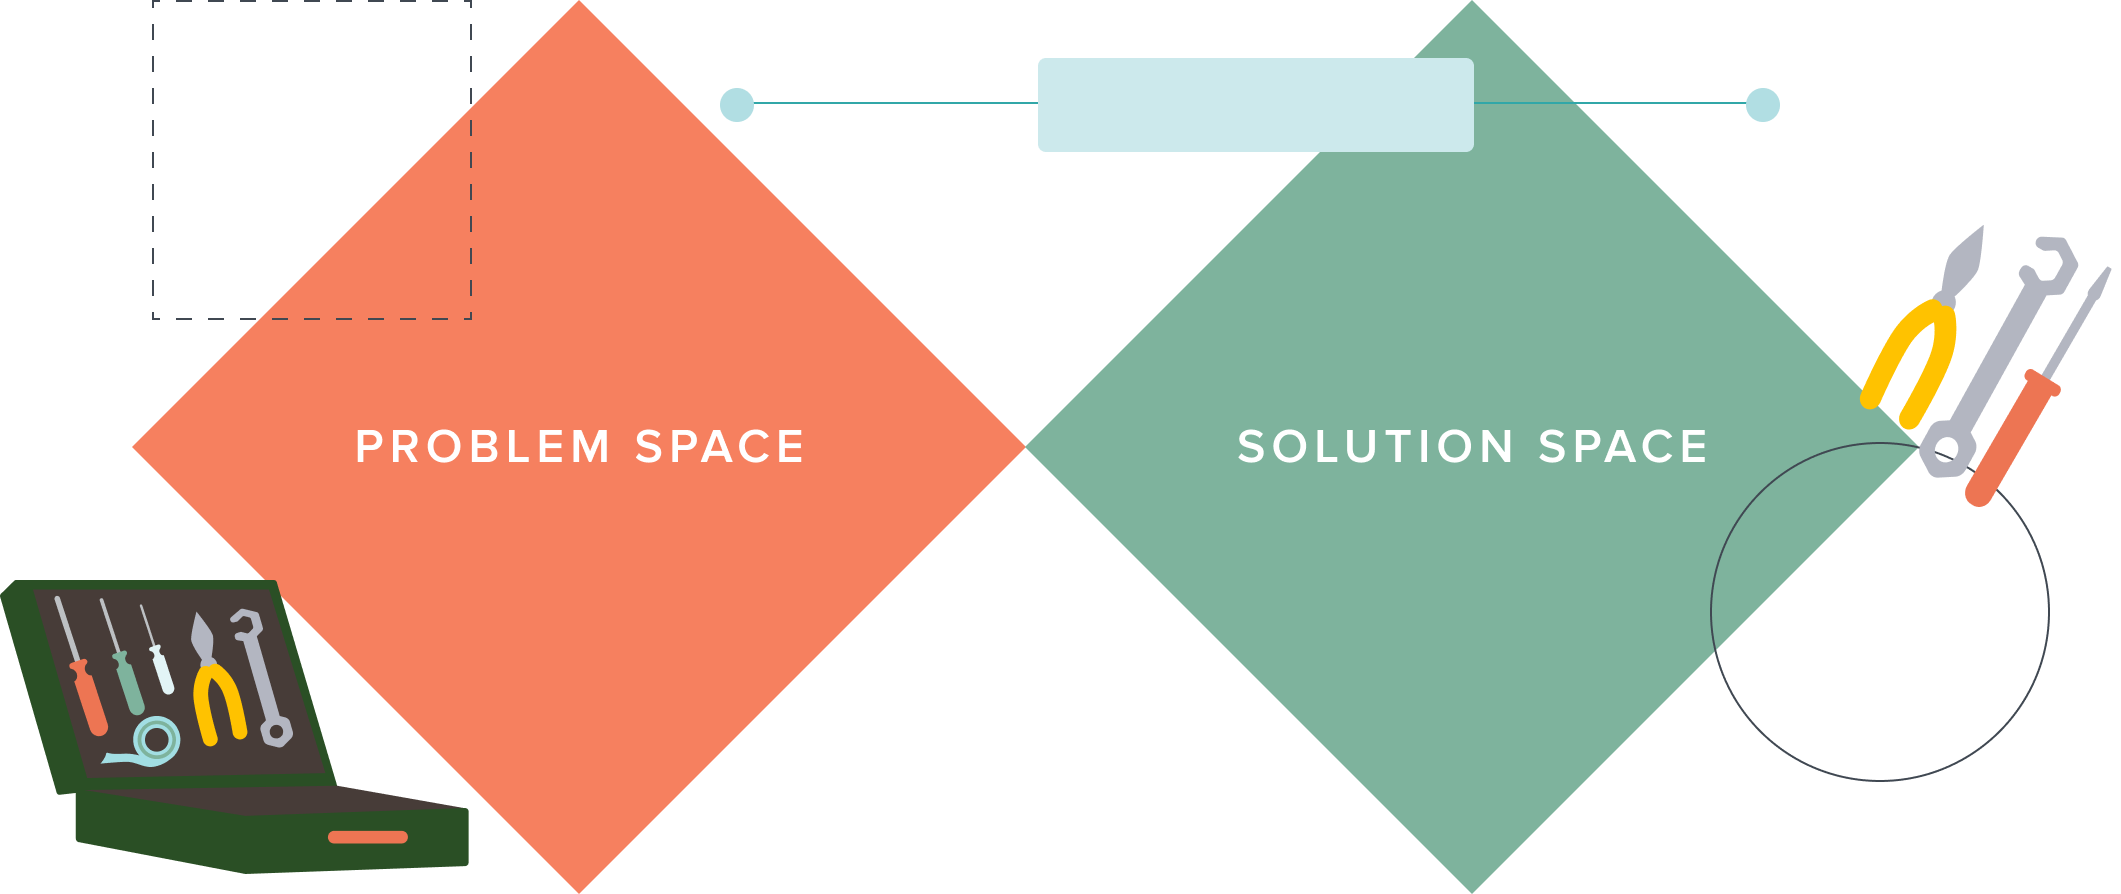 A graphic showing two diamonds, one with the title problem space and the other with the title solution space